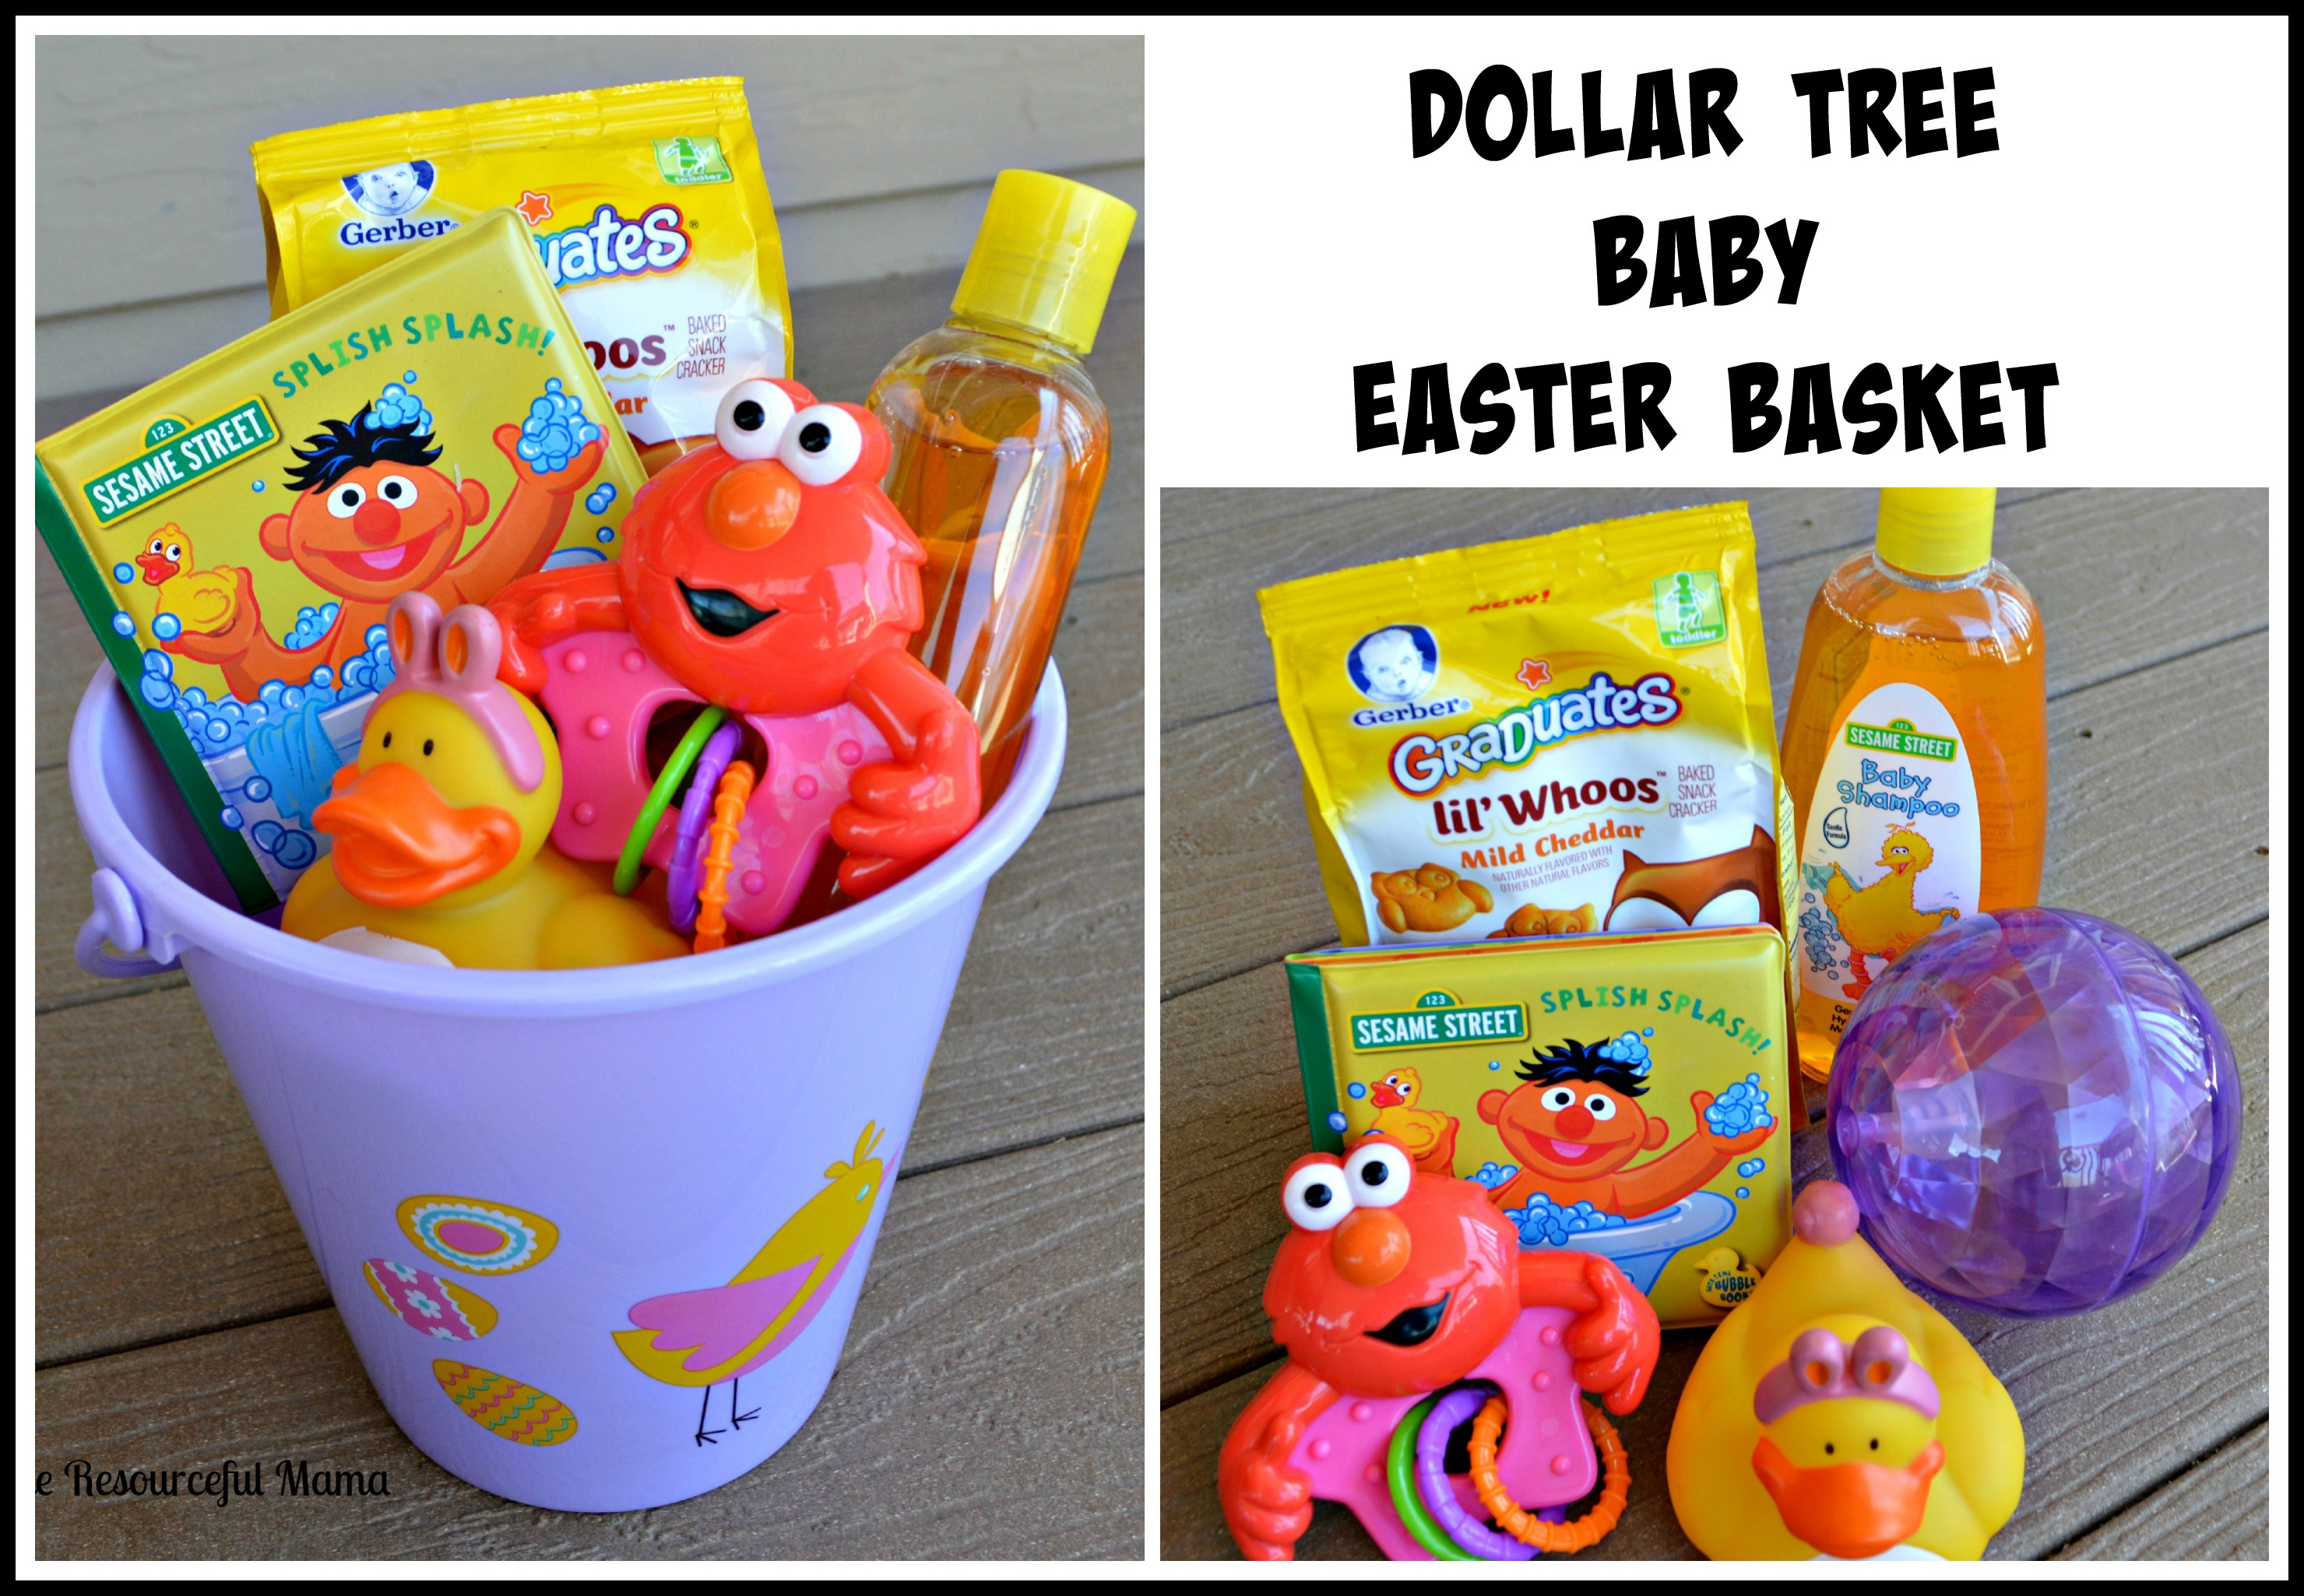 Dollar tree easter baskets the resourceful mama dollar tree easter basket baby negle Images